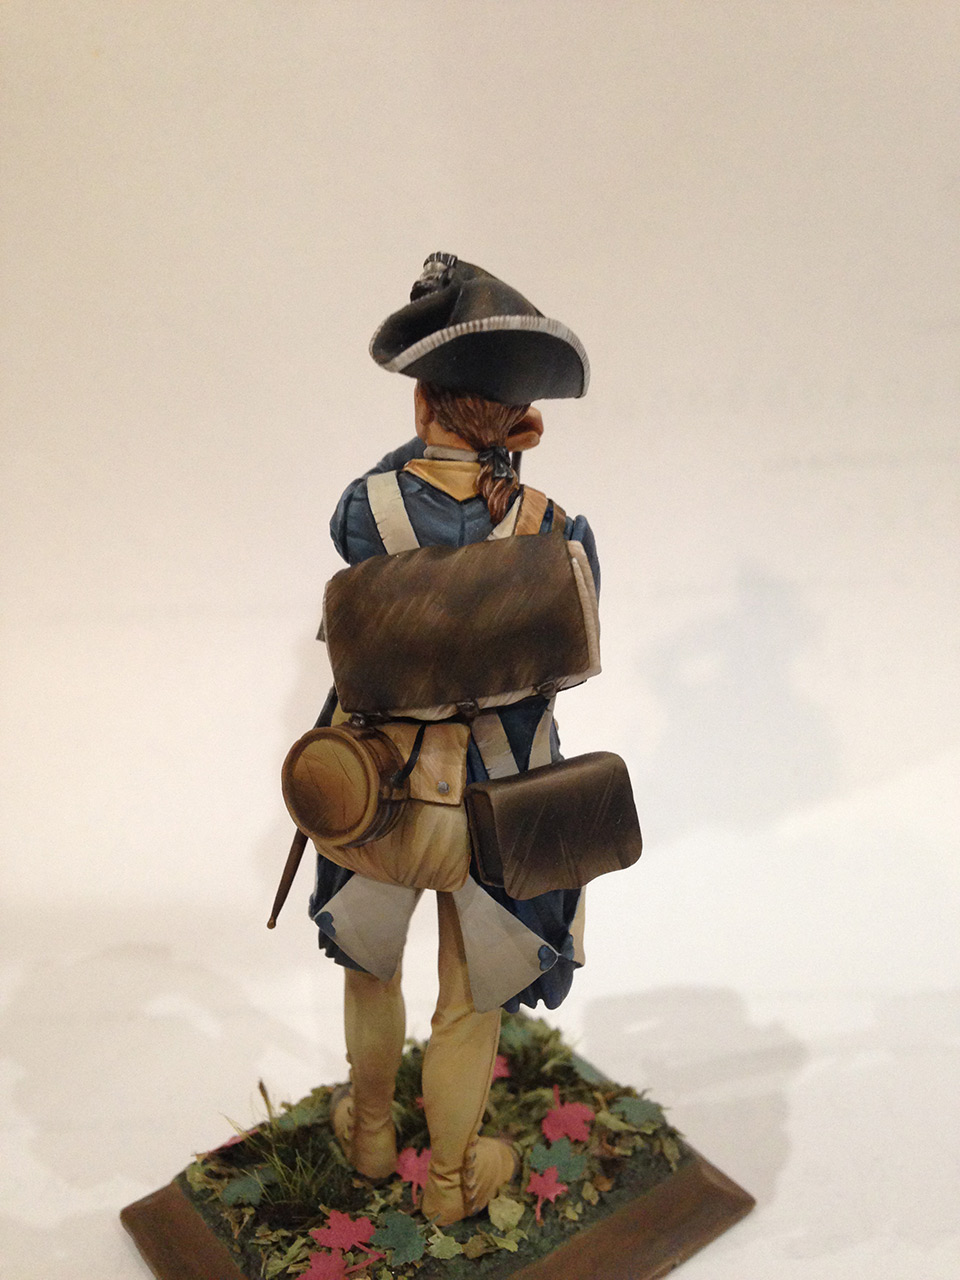 Figures: Private, 1st New York regt. of Continental Army, photo #3